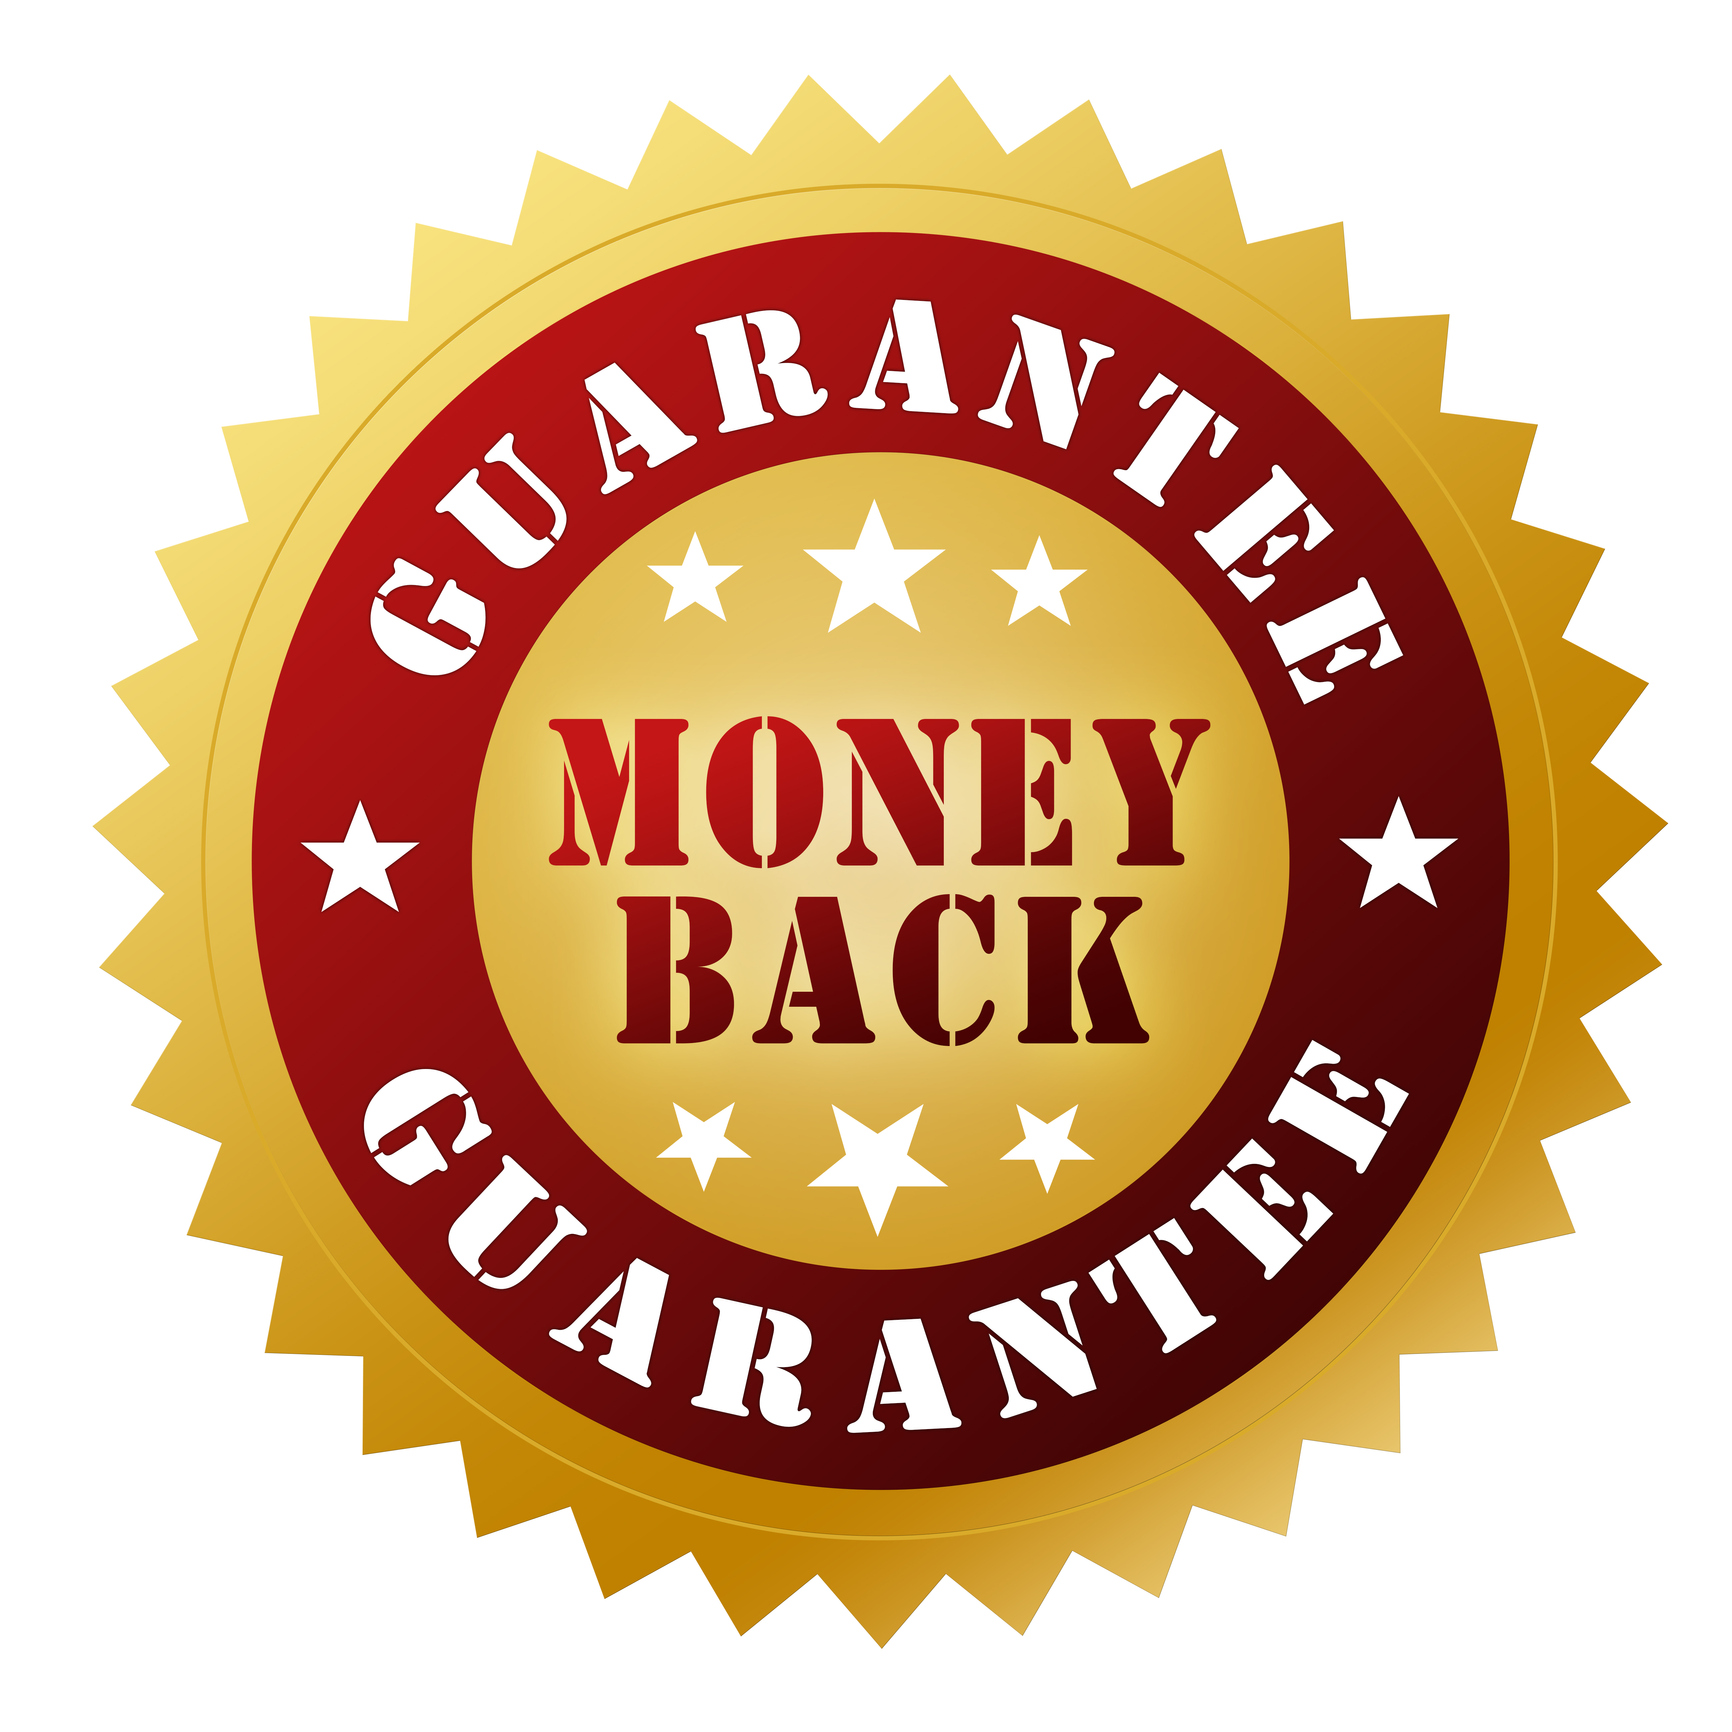 200% Money Back Guarantee